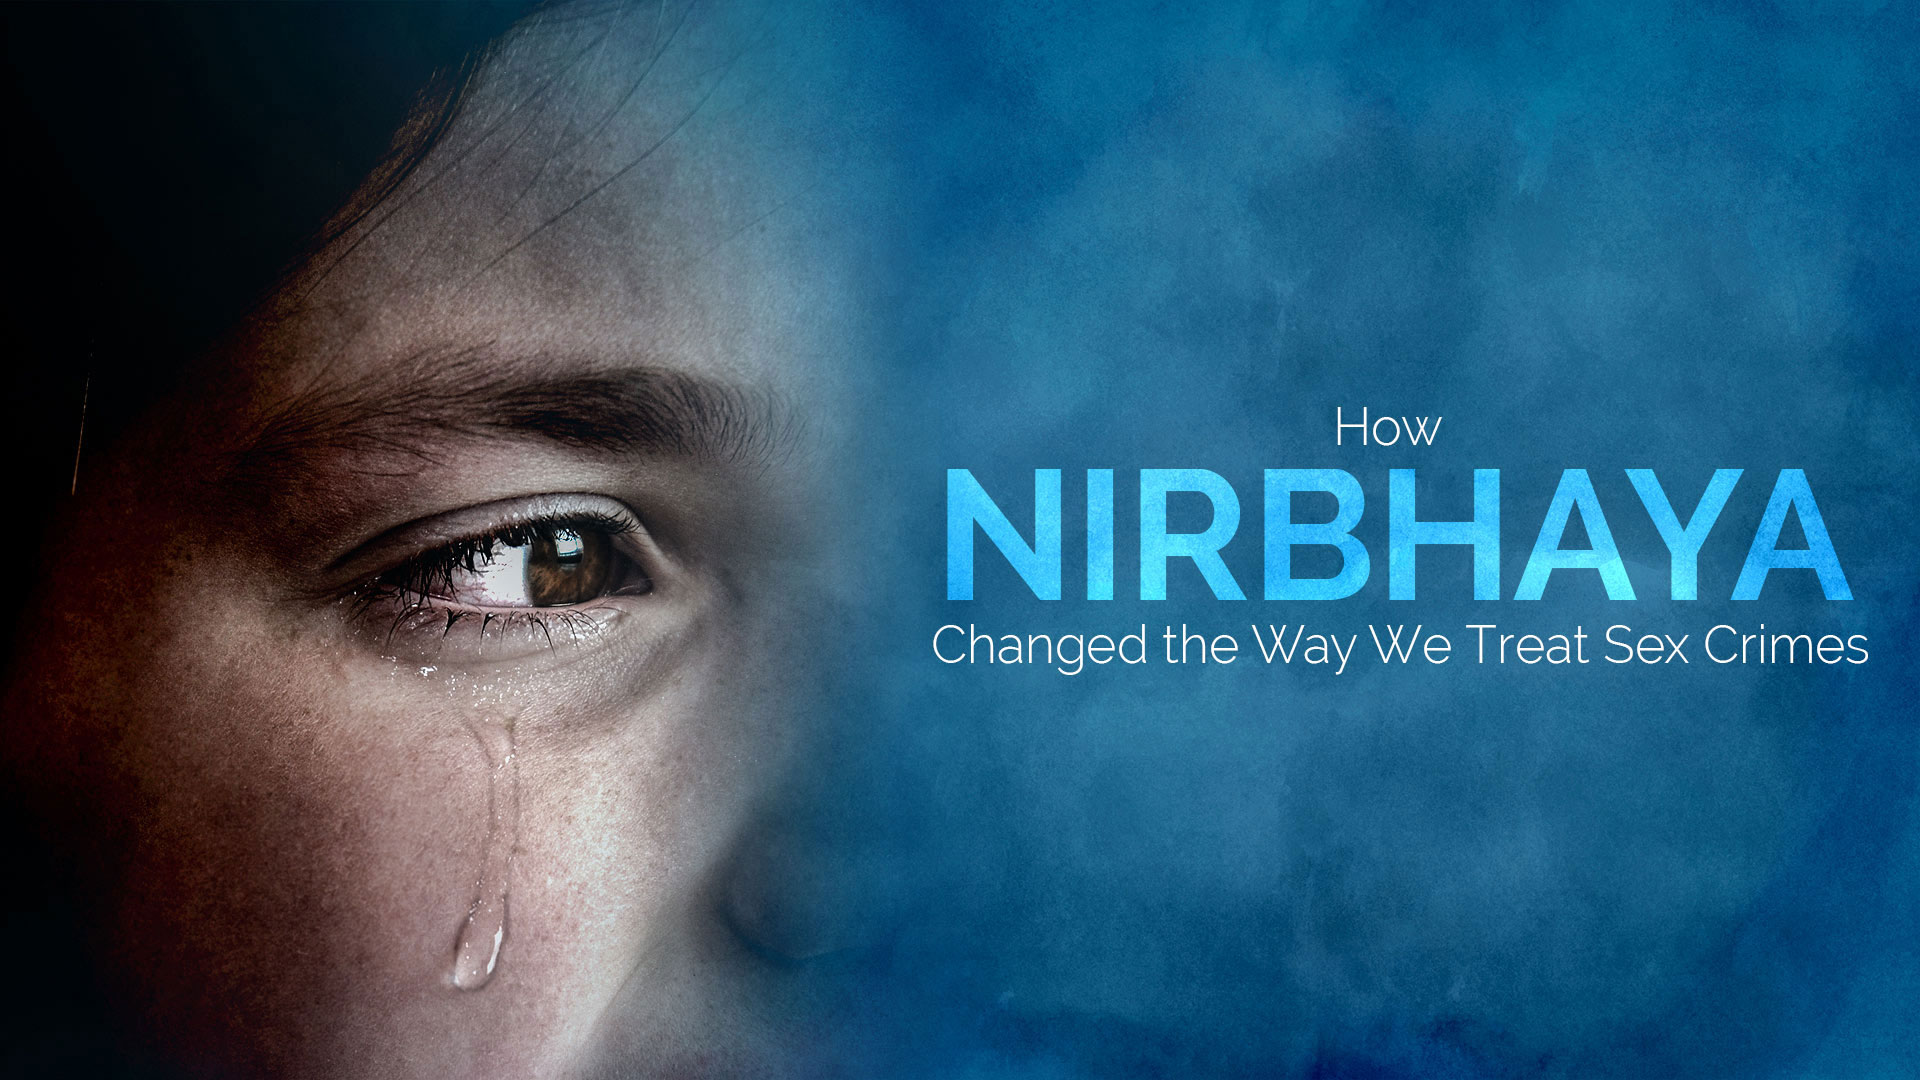 Wallpaper Country Girl How Nirbhaya Changed The Way We Treat Sex Crimes